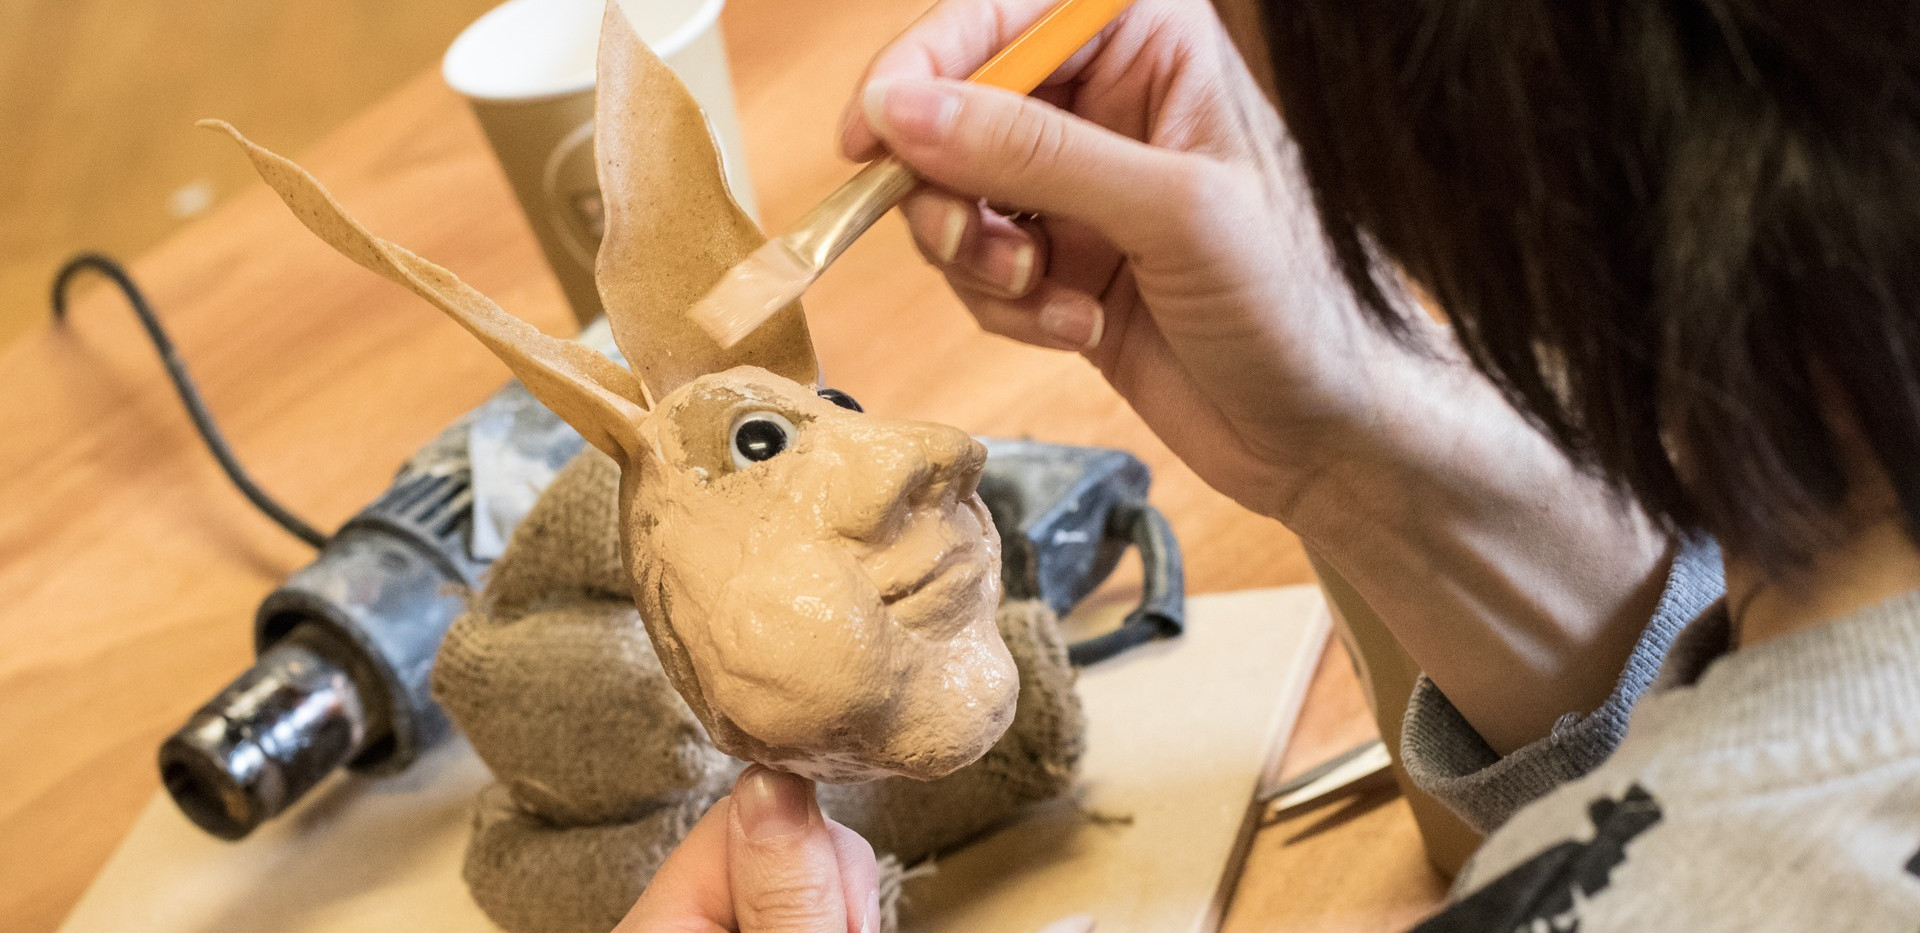 Beginner's Puppetry Workshop by Strangeface